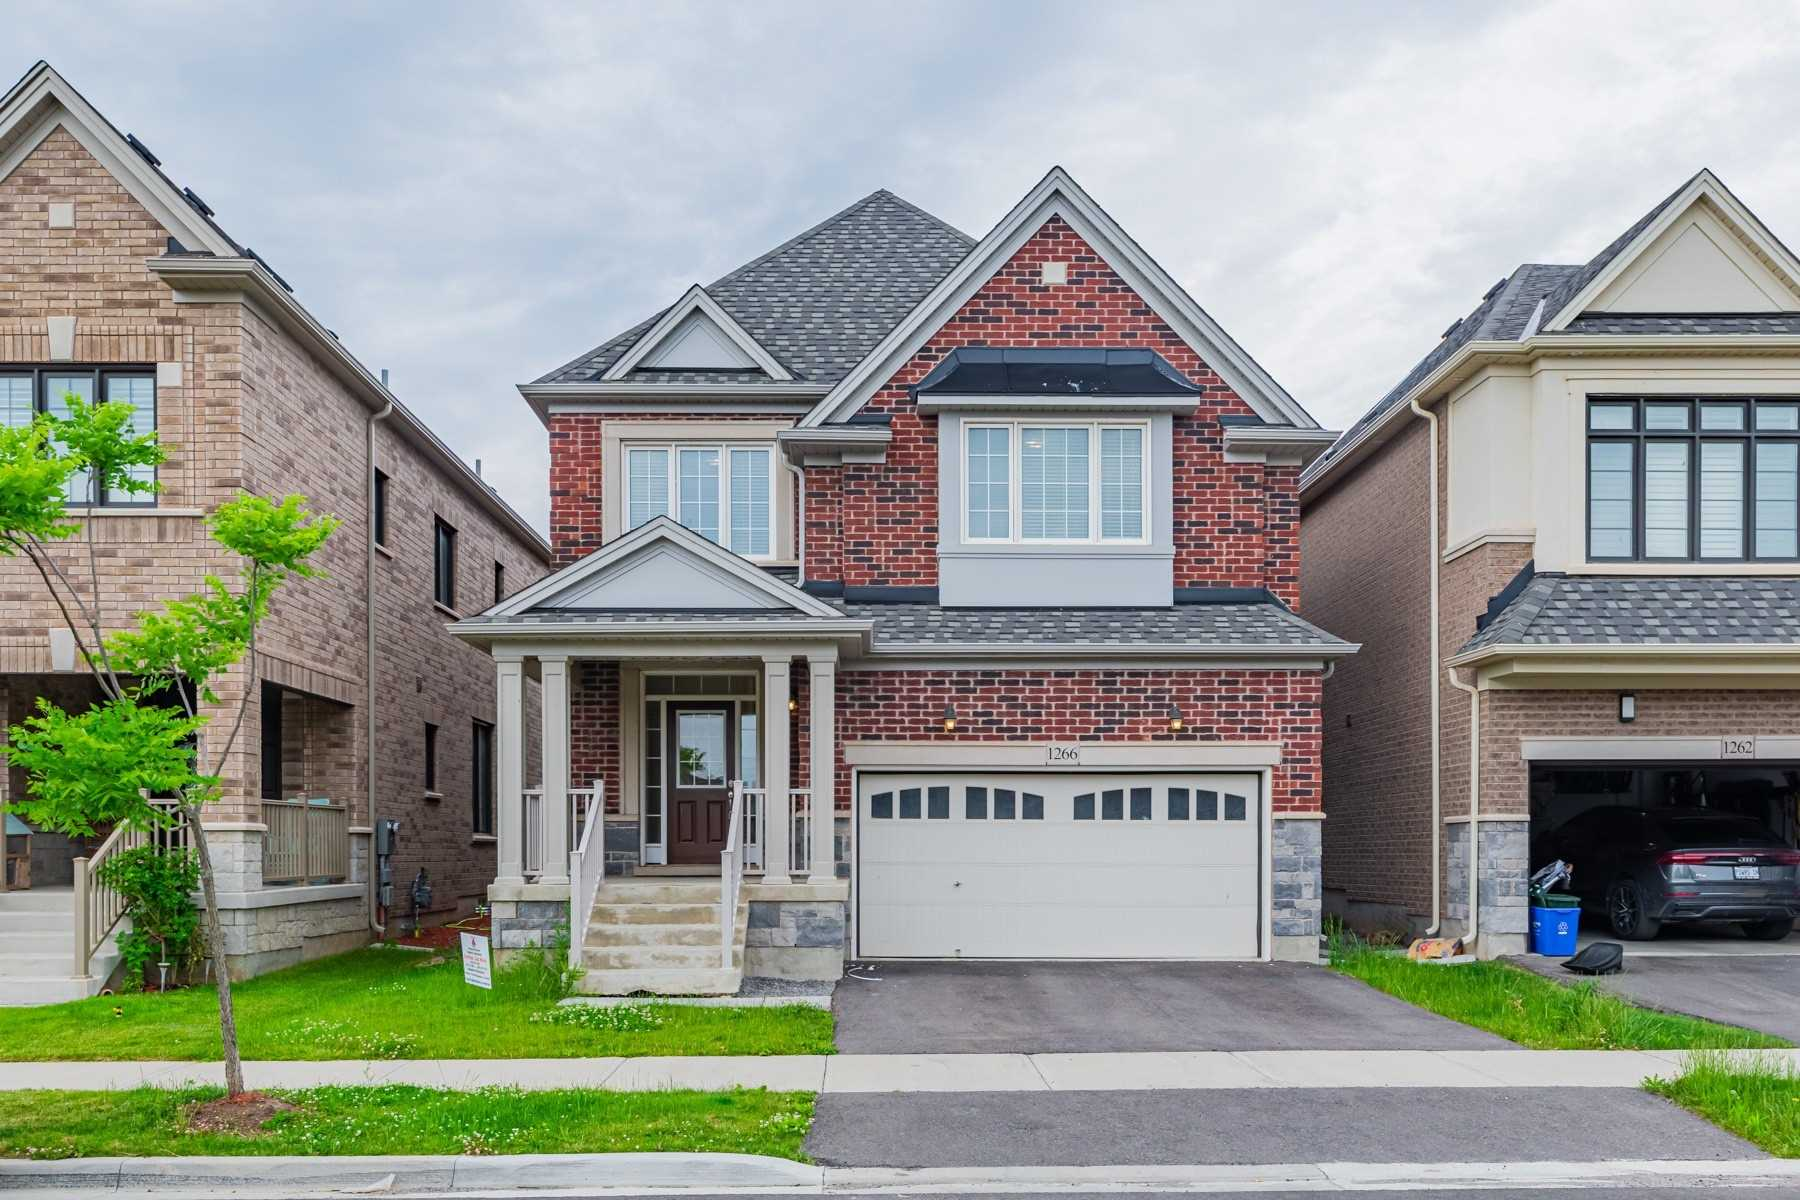 1266 Mcphedran Pt - Ford Detached for sale, 4 Bedrooms (W5324732)